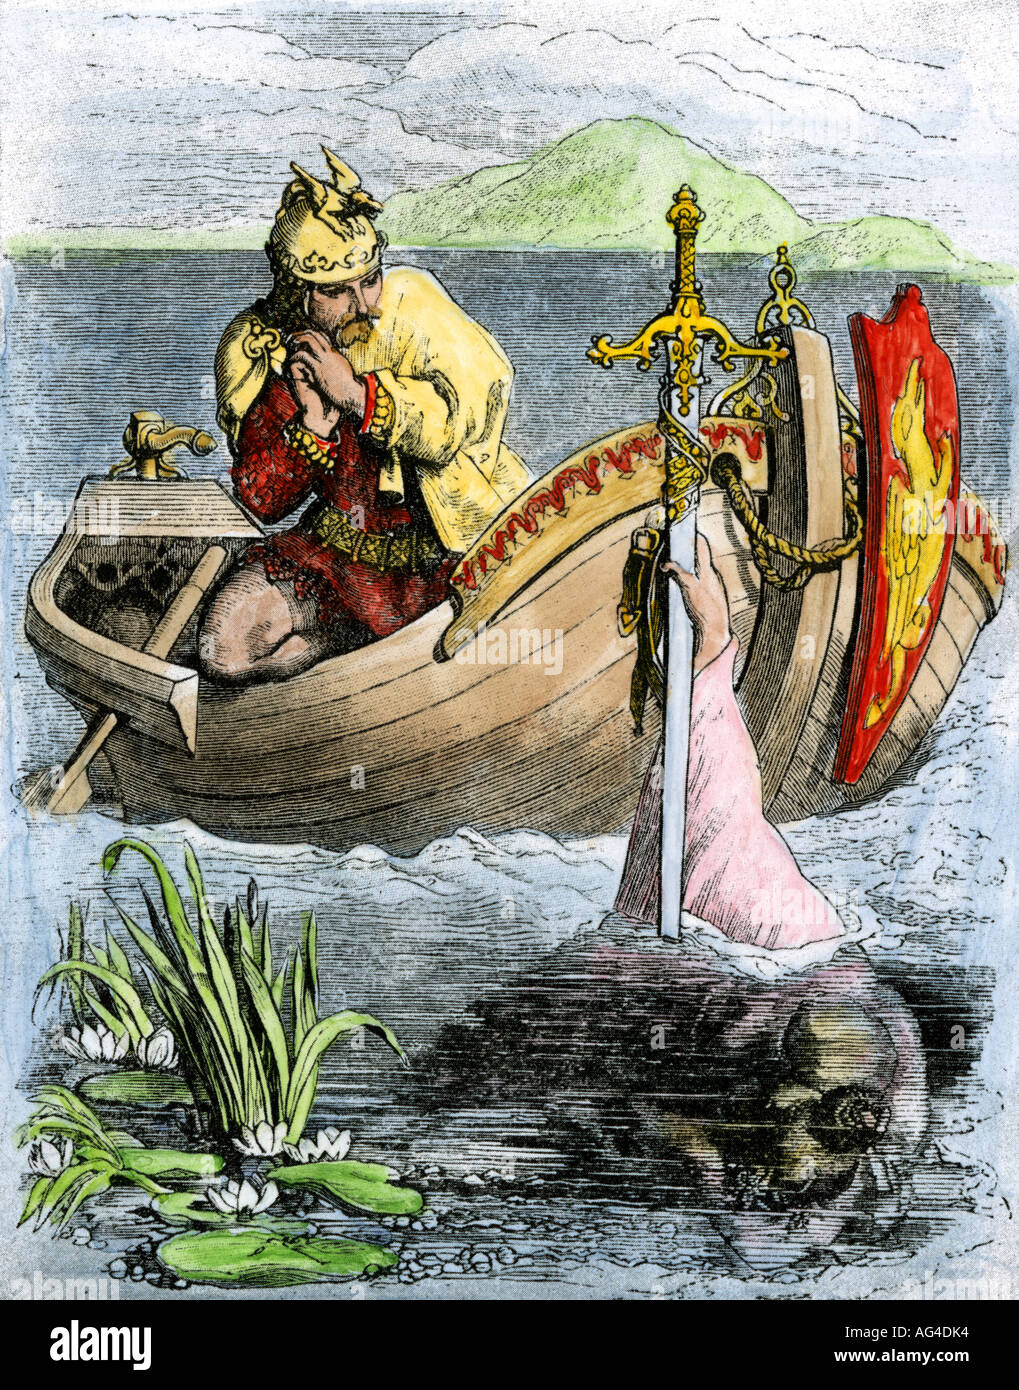 King Arthur receiving his magic sword Excalibur from the Lady of the Lake. Hand-colored woodcut - Stock Image